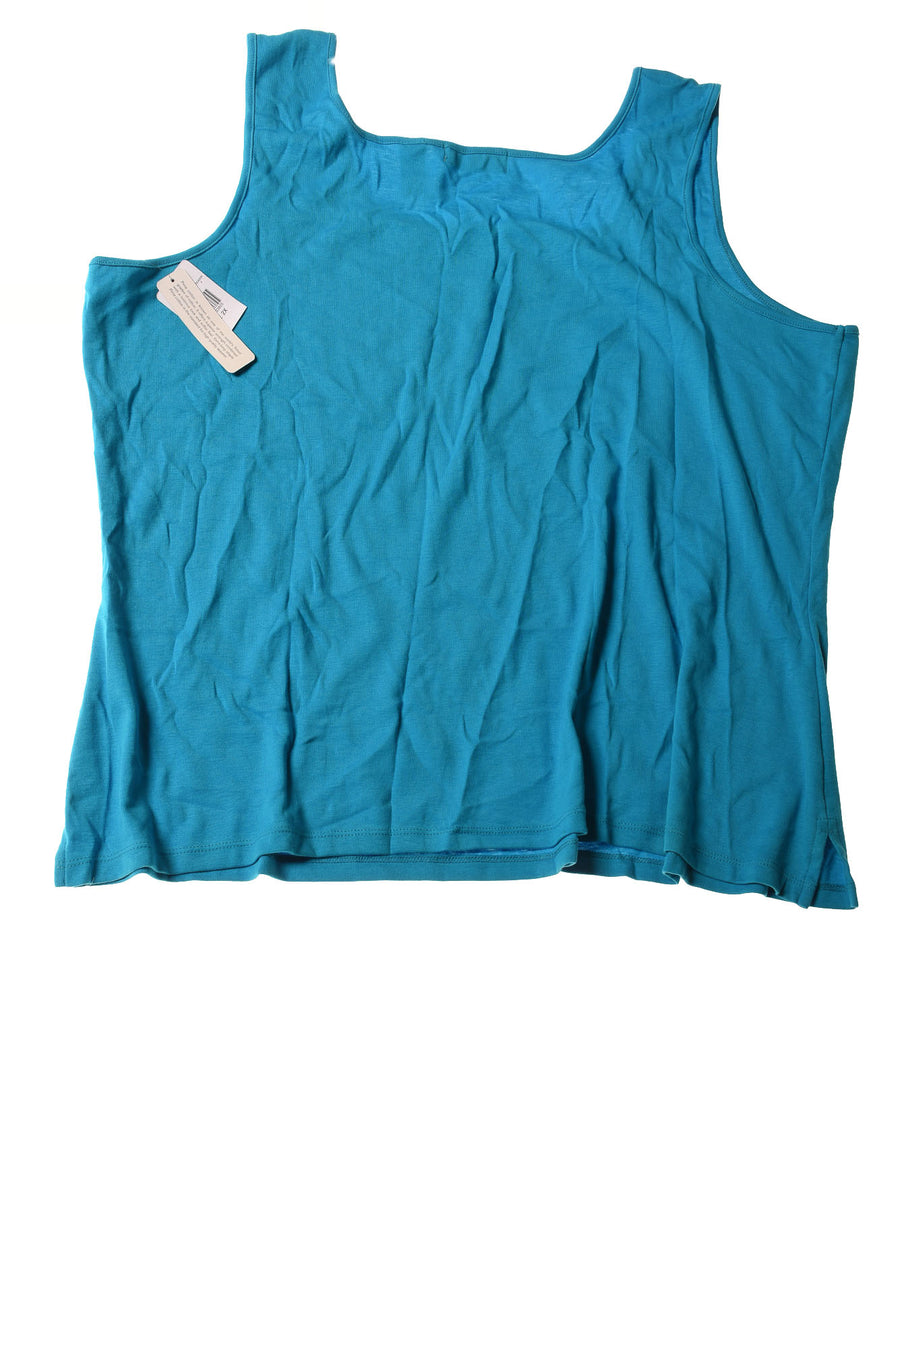 USED Kate Hill Women's Plus Size Top 2X Blue